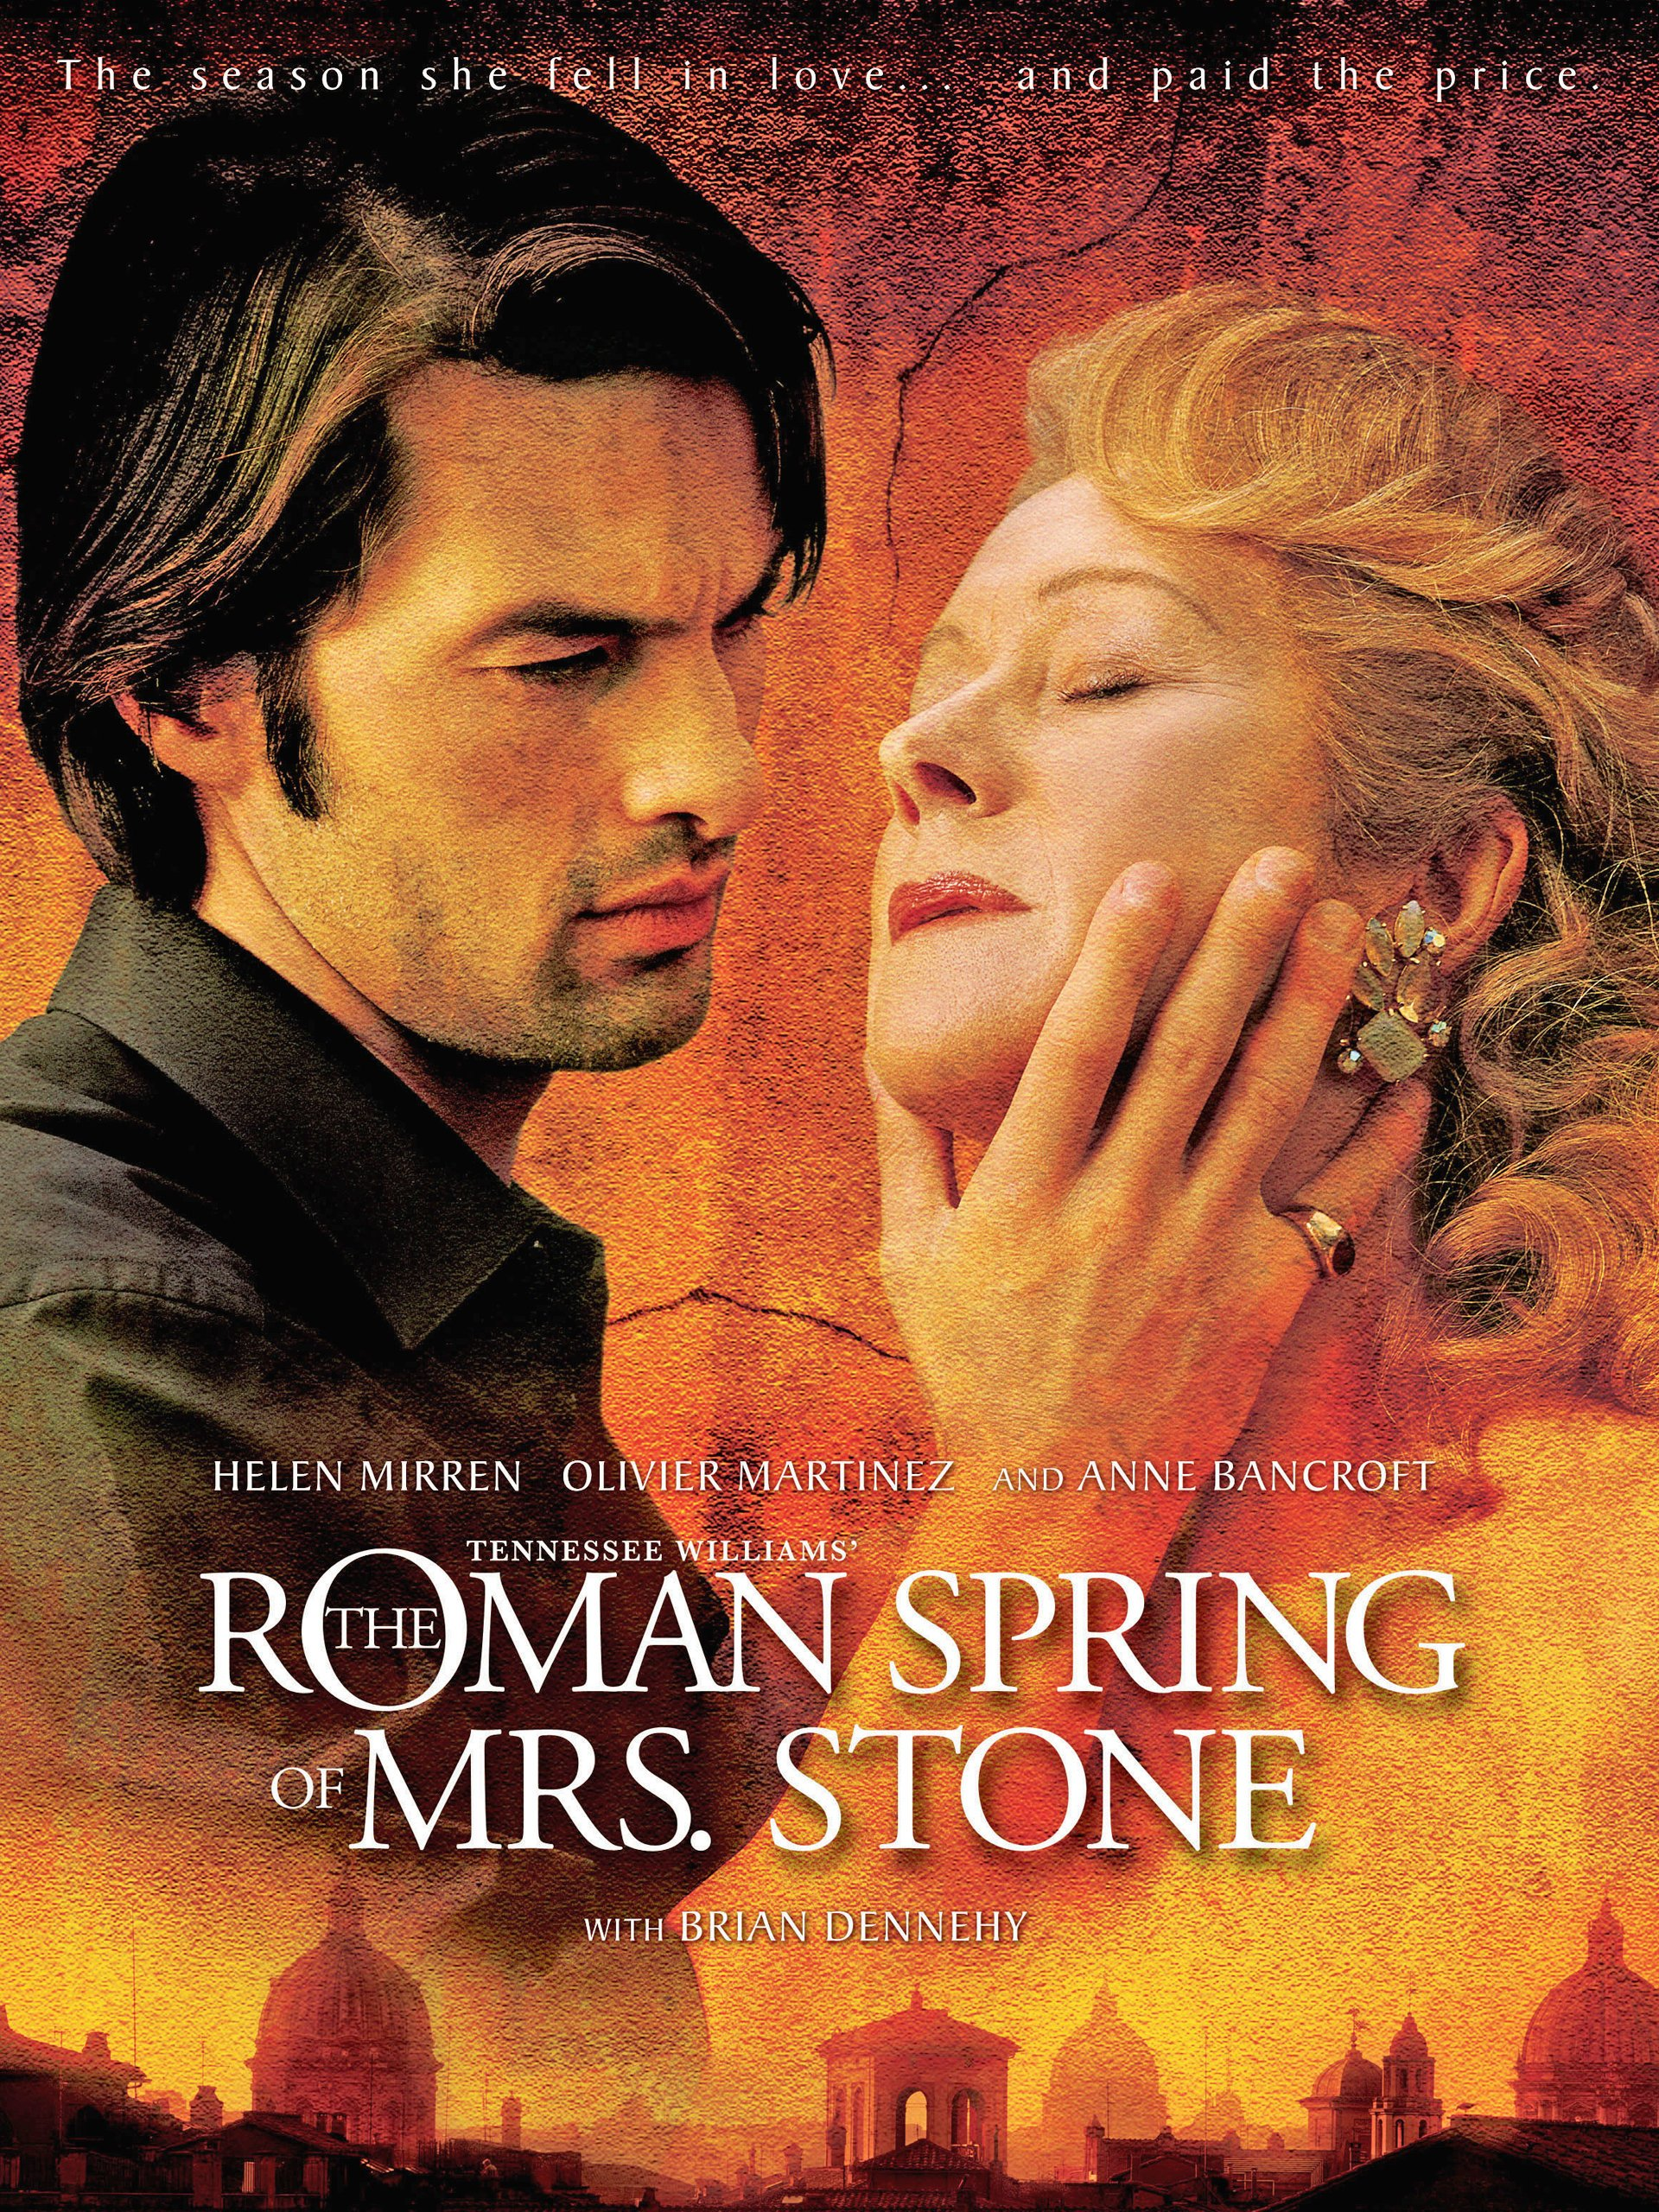 Download image 1700s woman portrait pc android iphone and ipad - Tennessee Williams The Roman Spring Of Mrs Stone